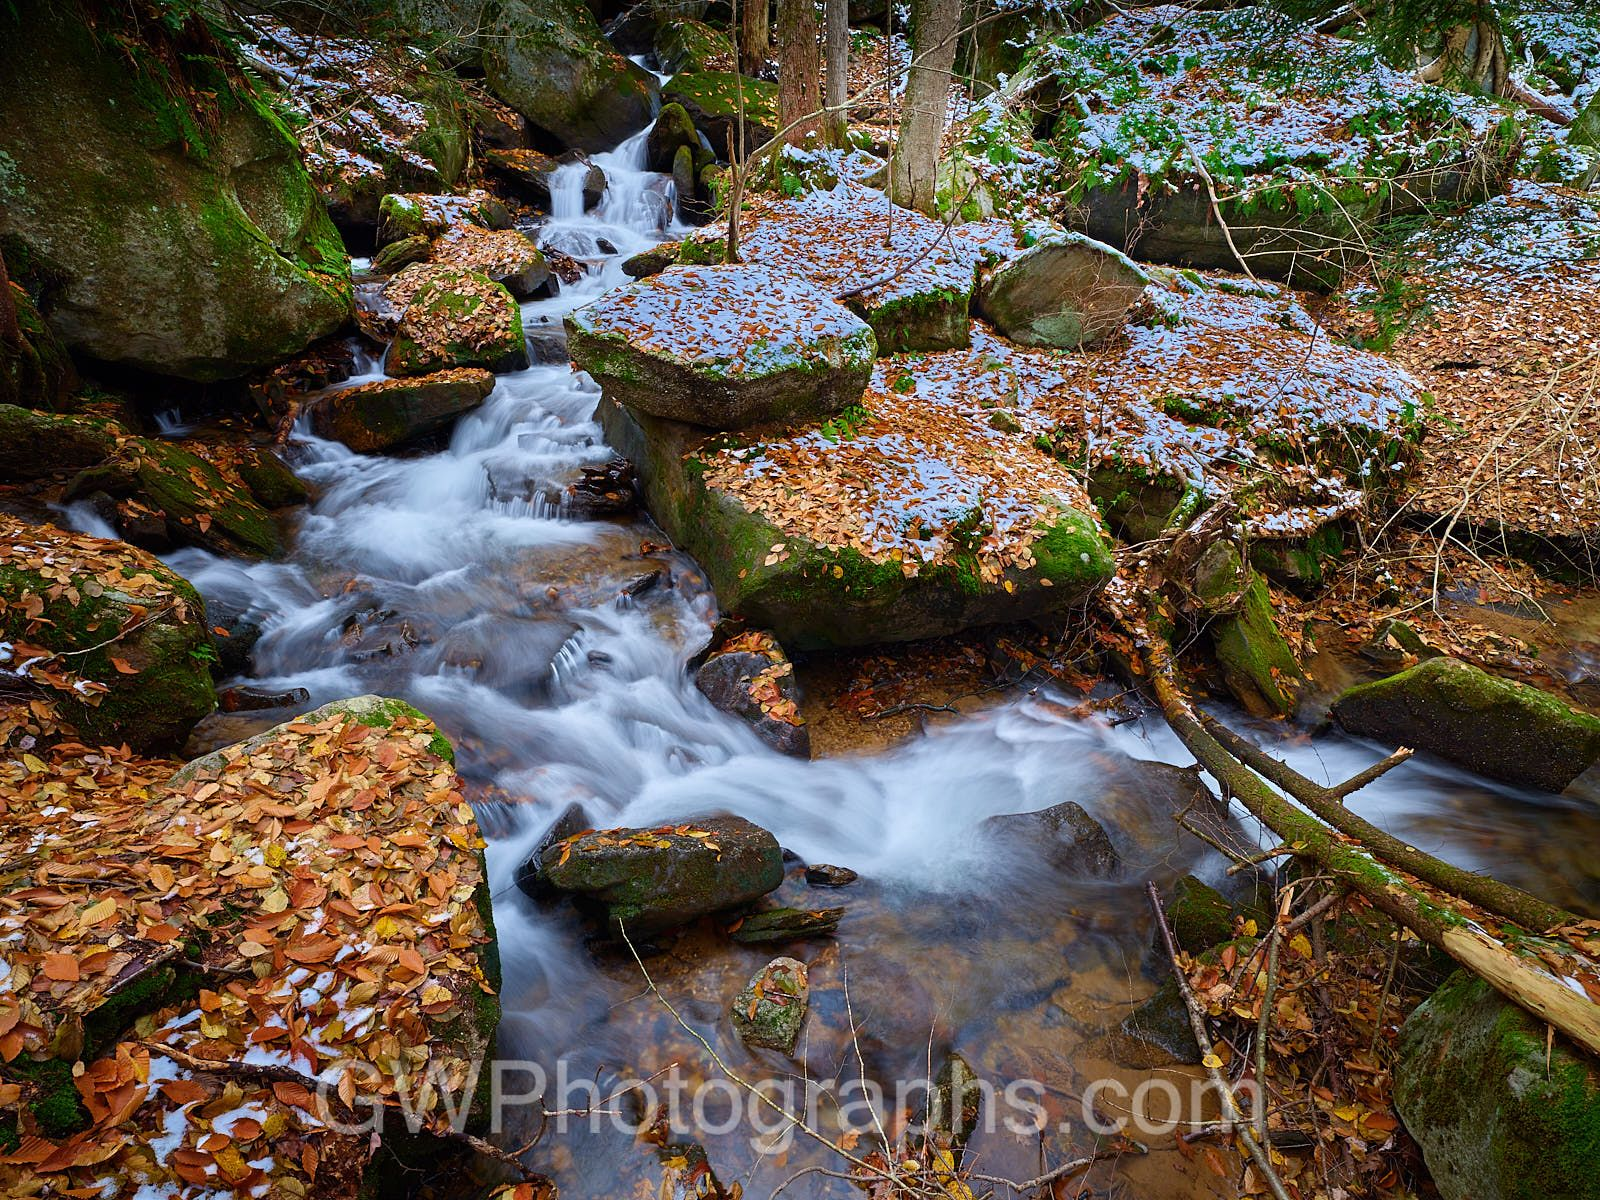 Bent Run Falls flows into the Allegheny River above the